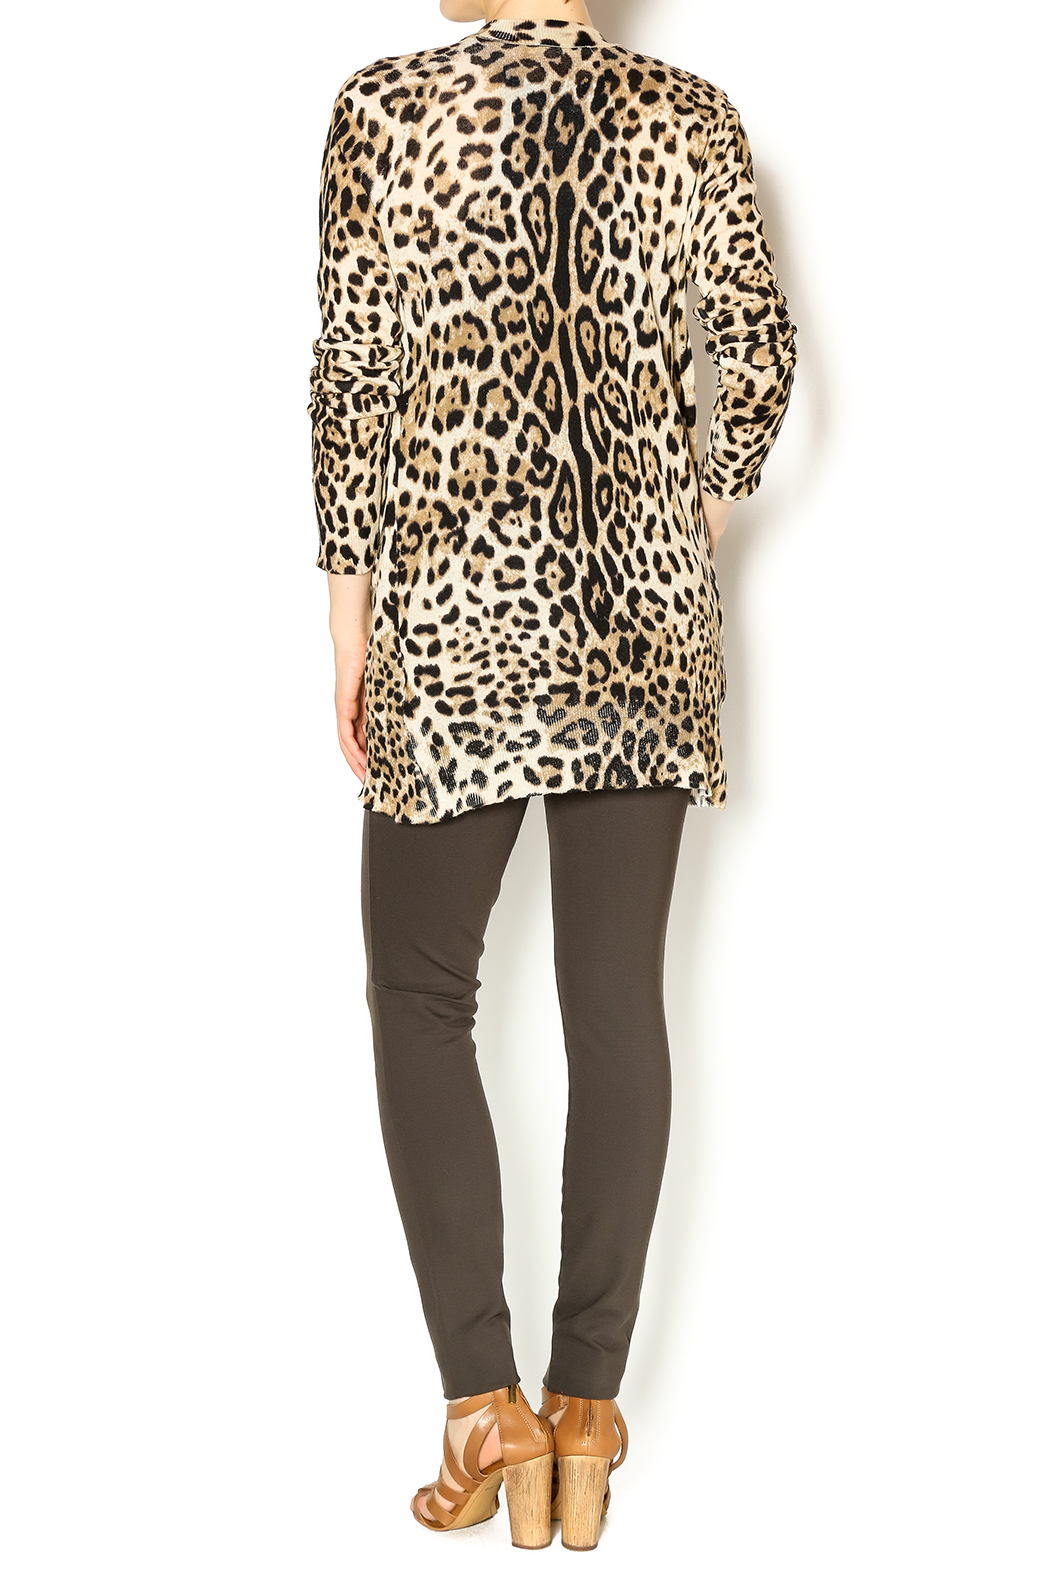 Ellison Leopard Cardigan from New York City by Dor L'Dor — Shoptiques